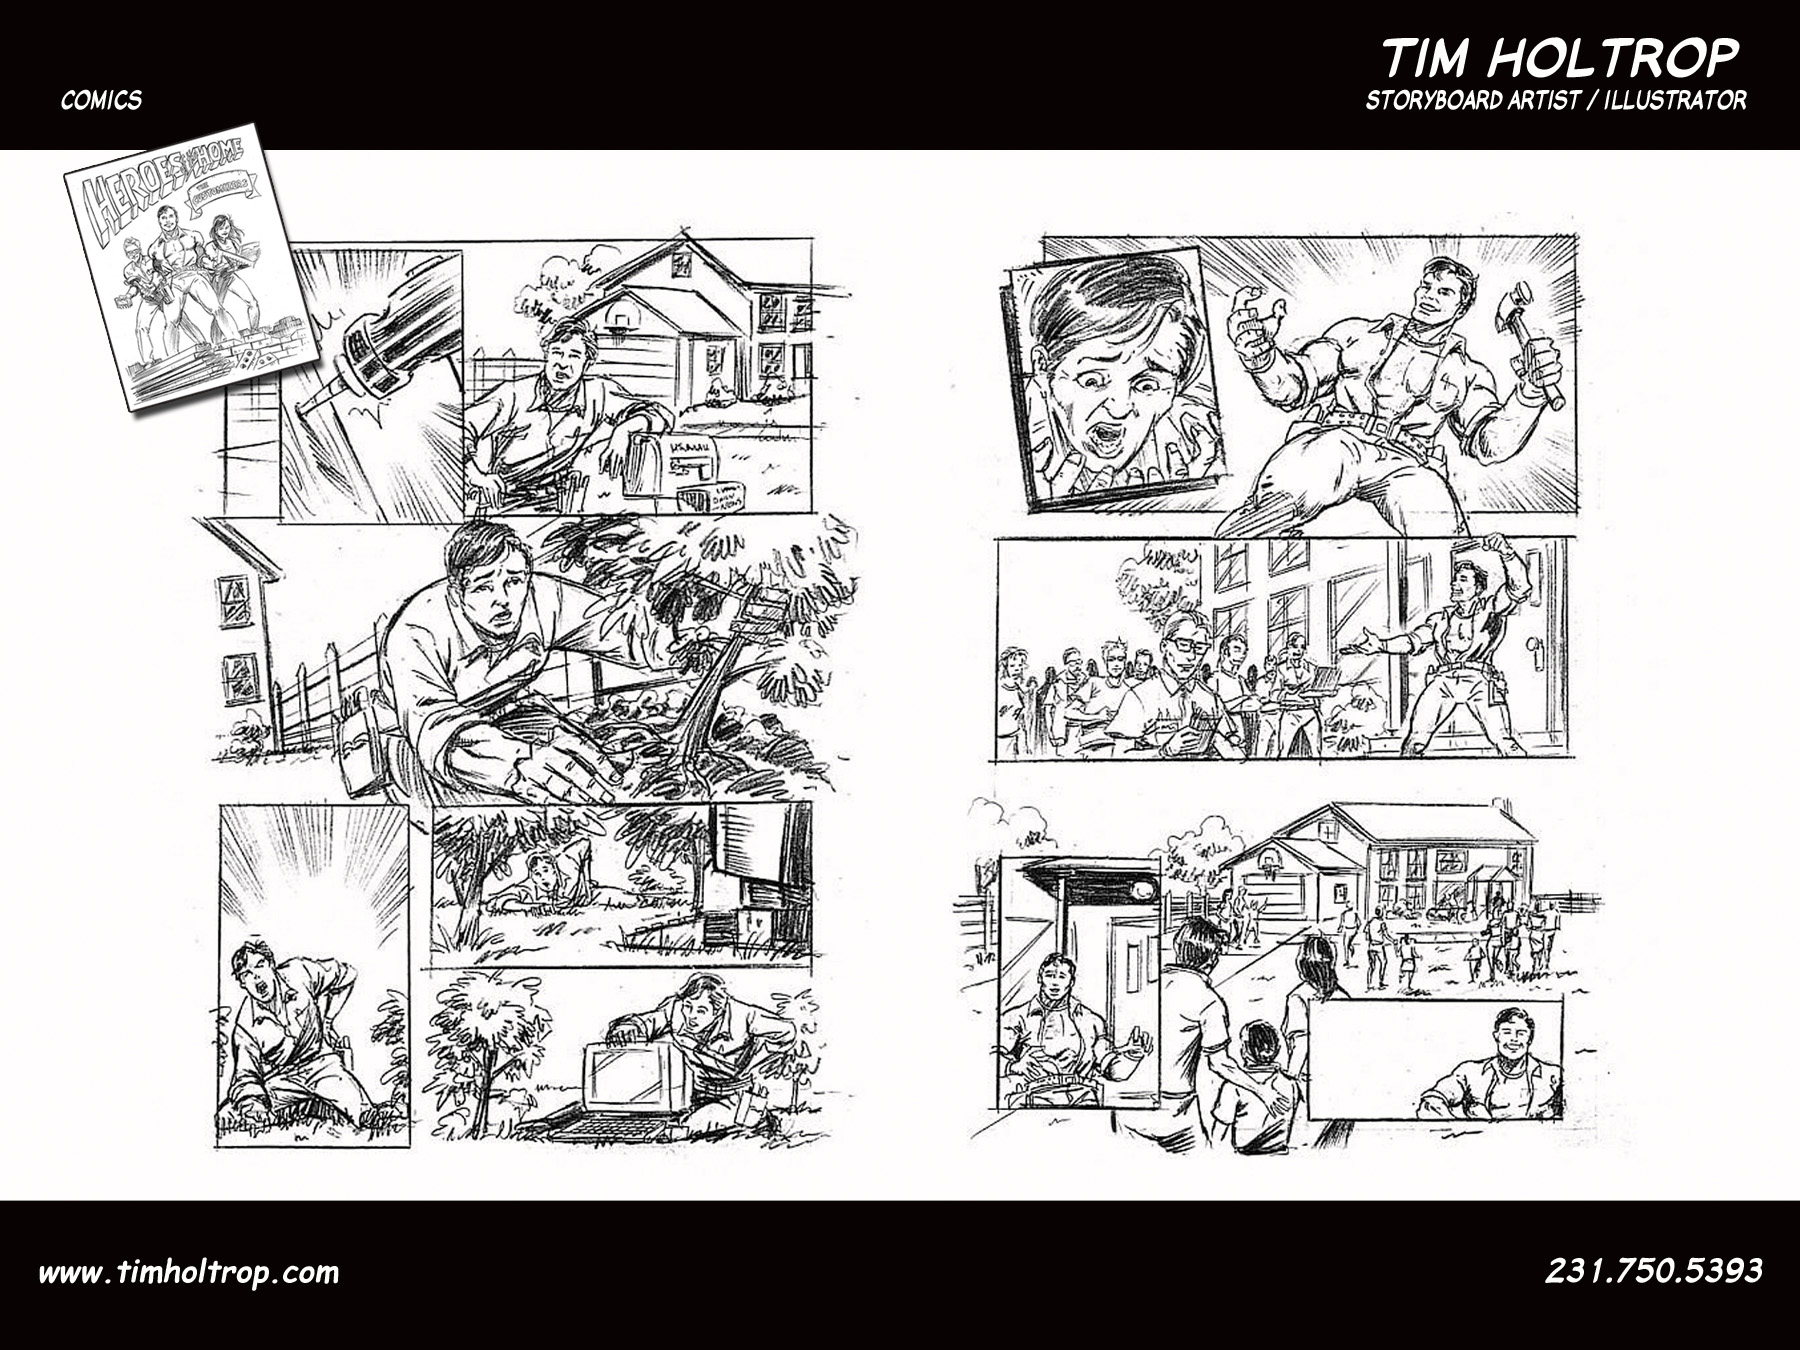 Comic Storyboards | Tim Holtrop Storyboard Artist Illustrator Comic Book